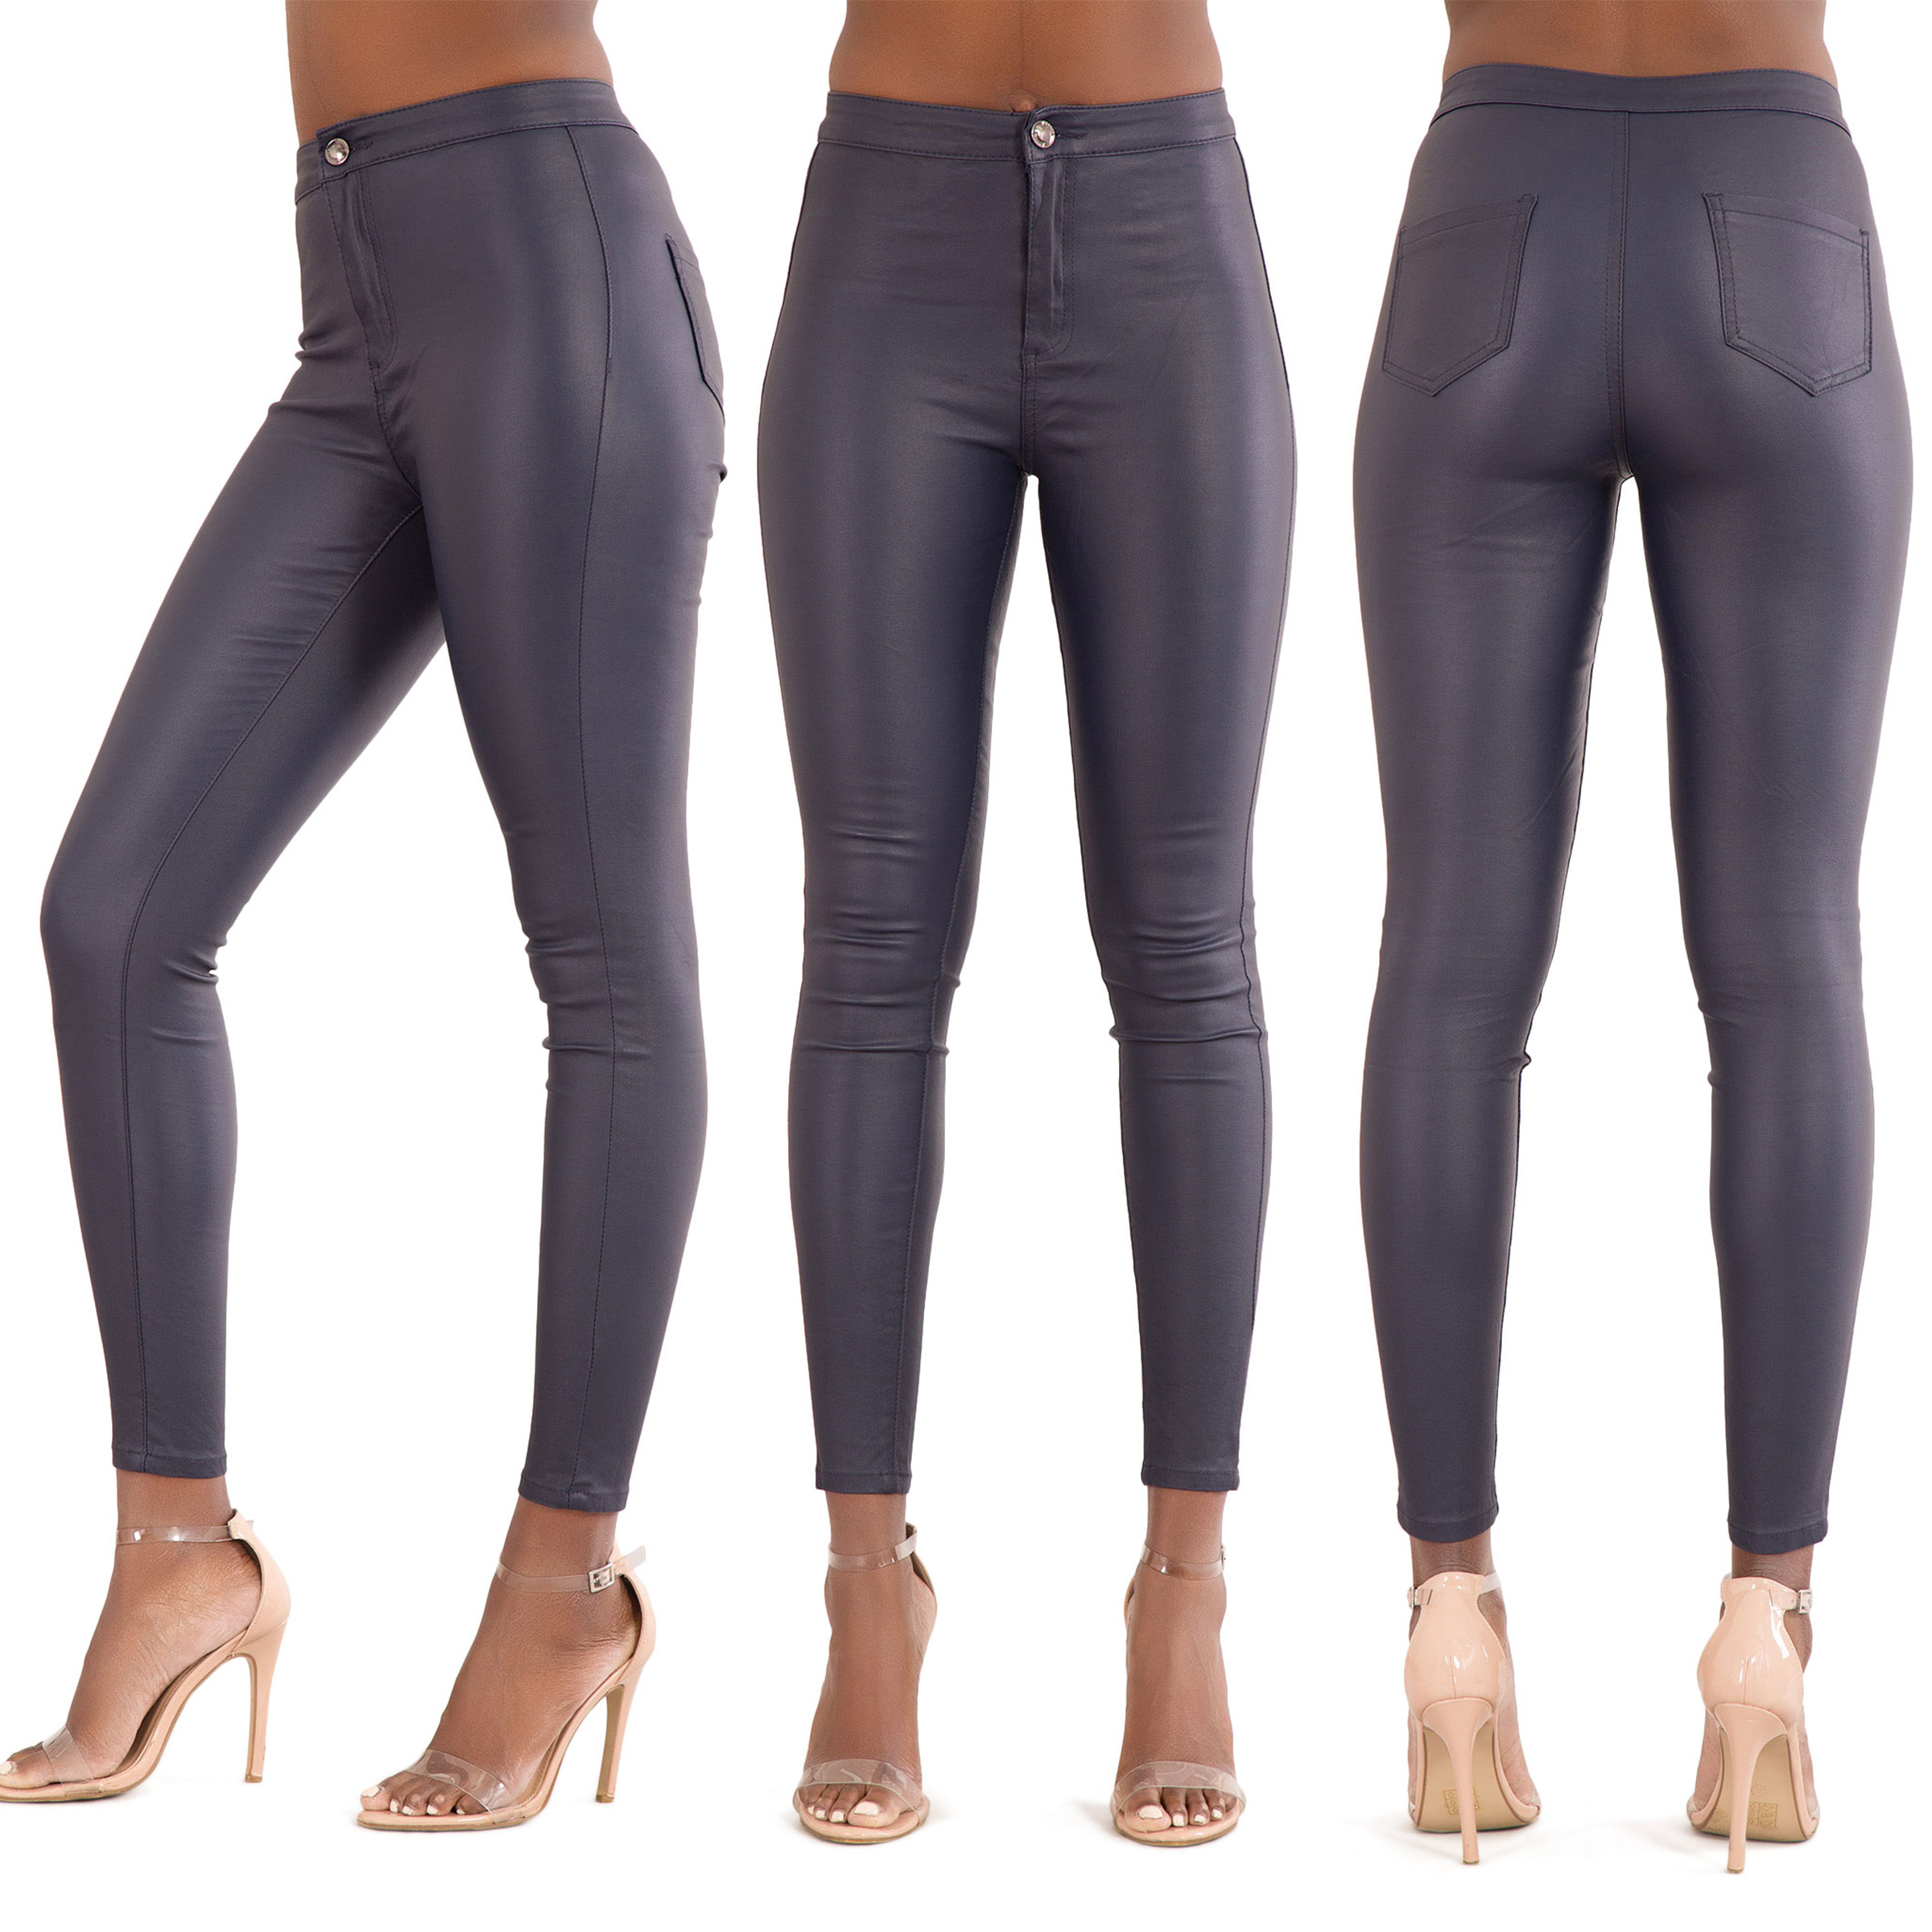 NEW WOMENS LEATHER LOOK JEANS SEXY TROUSERS LADIES BLACK SLIM FIT SIZE 6-22 6b1e8ea39